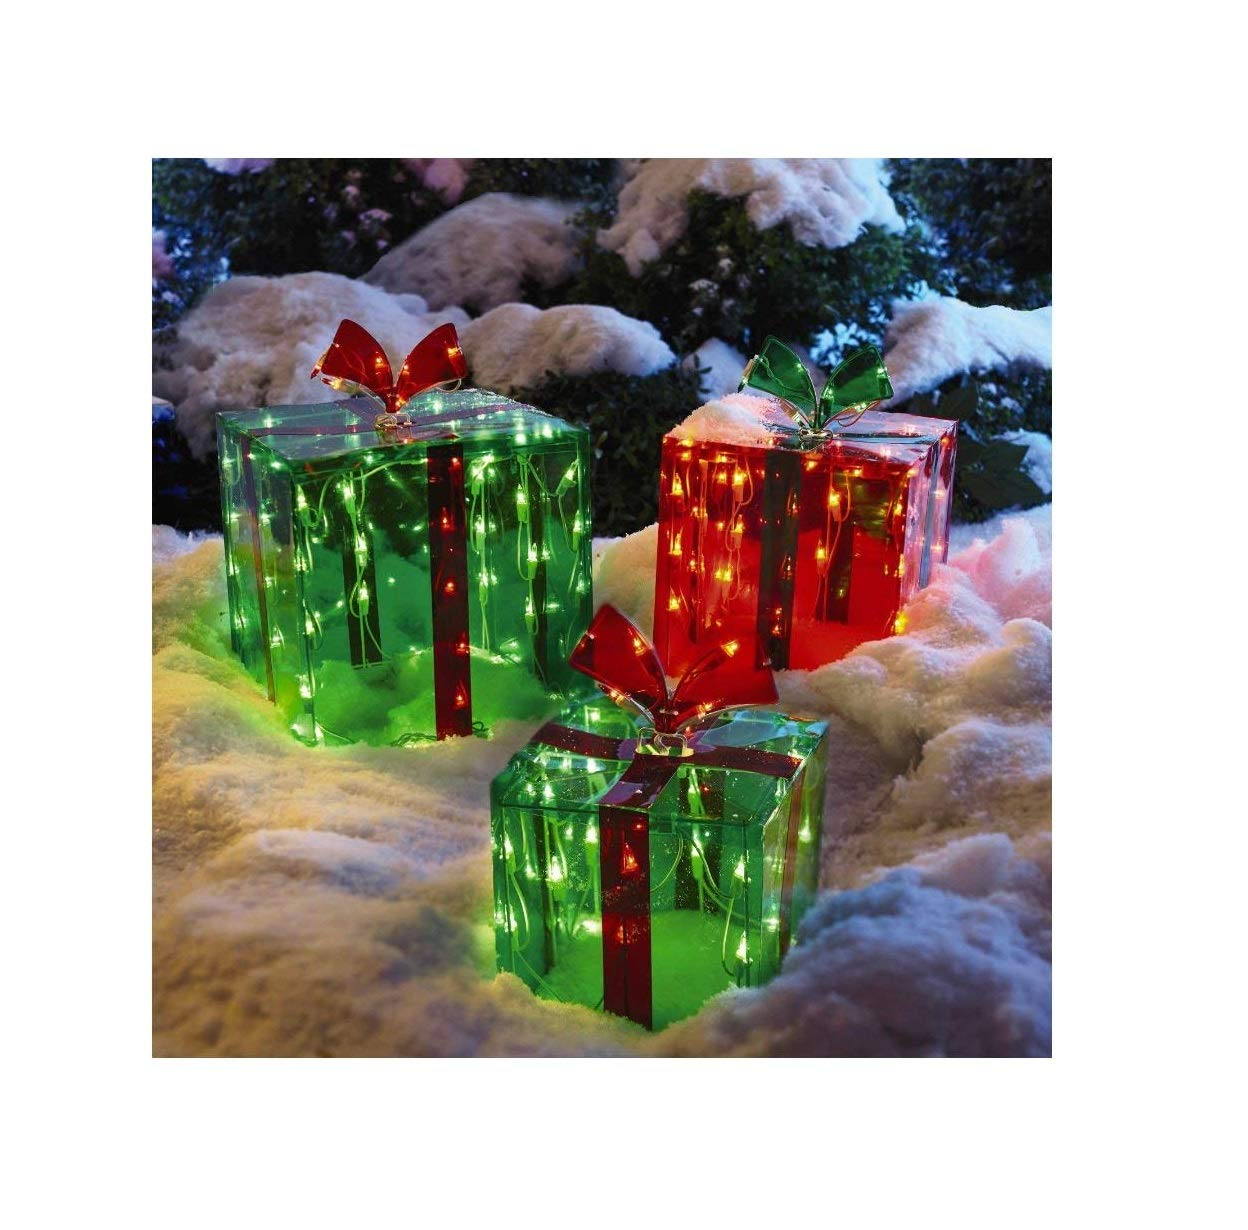 3 Lighted Gift Boxes Christmas Decoration Yard Decor 150 Lights ...